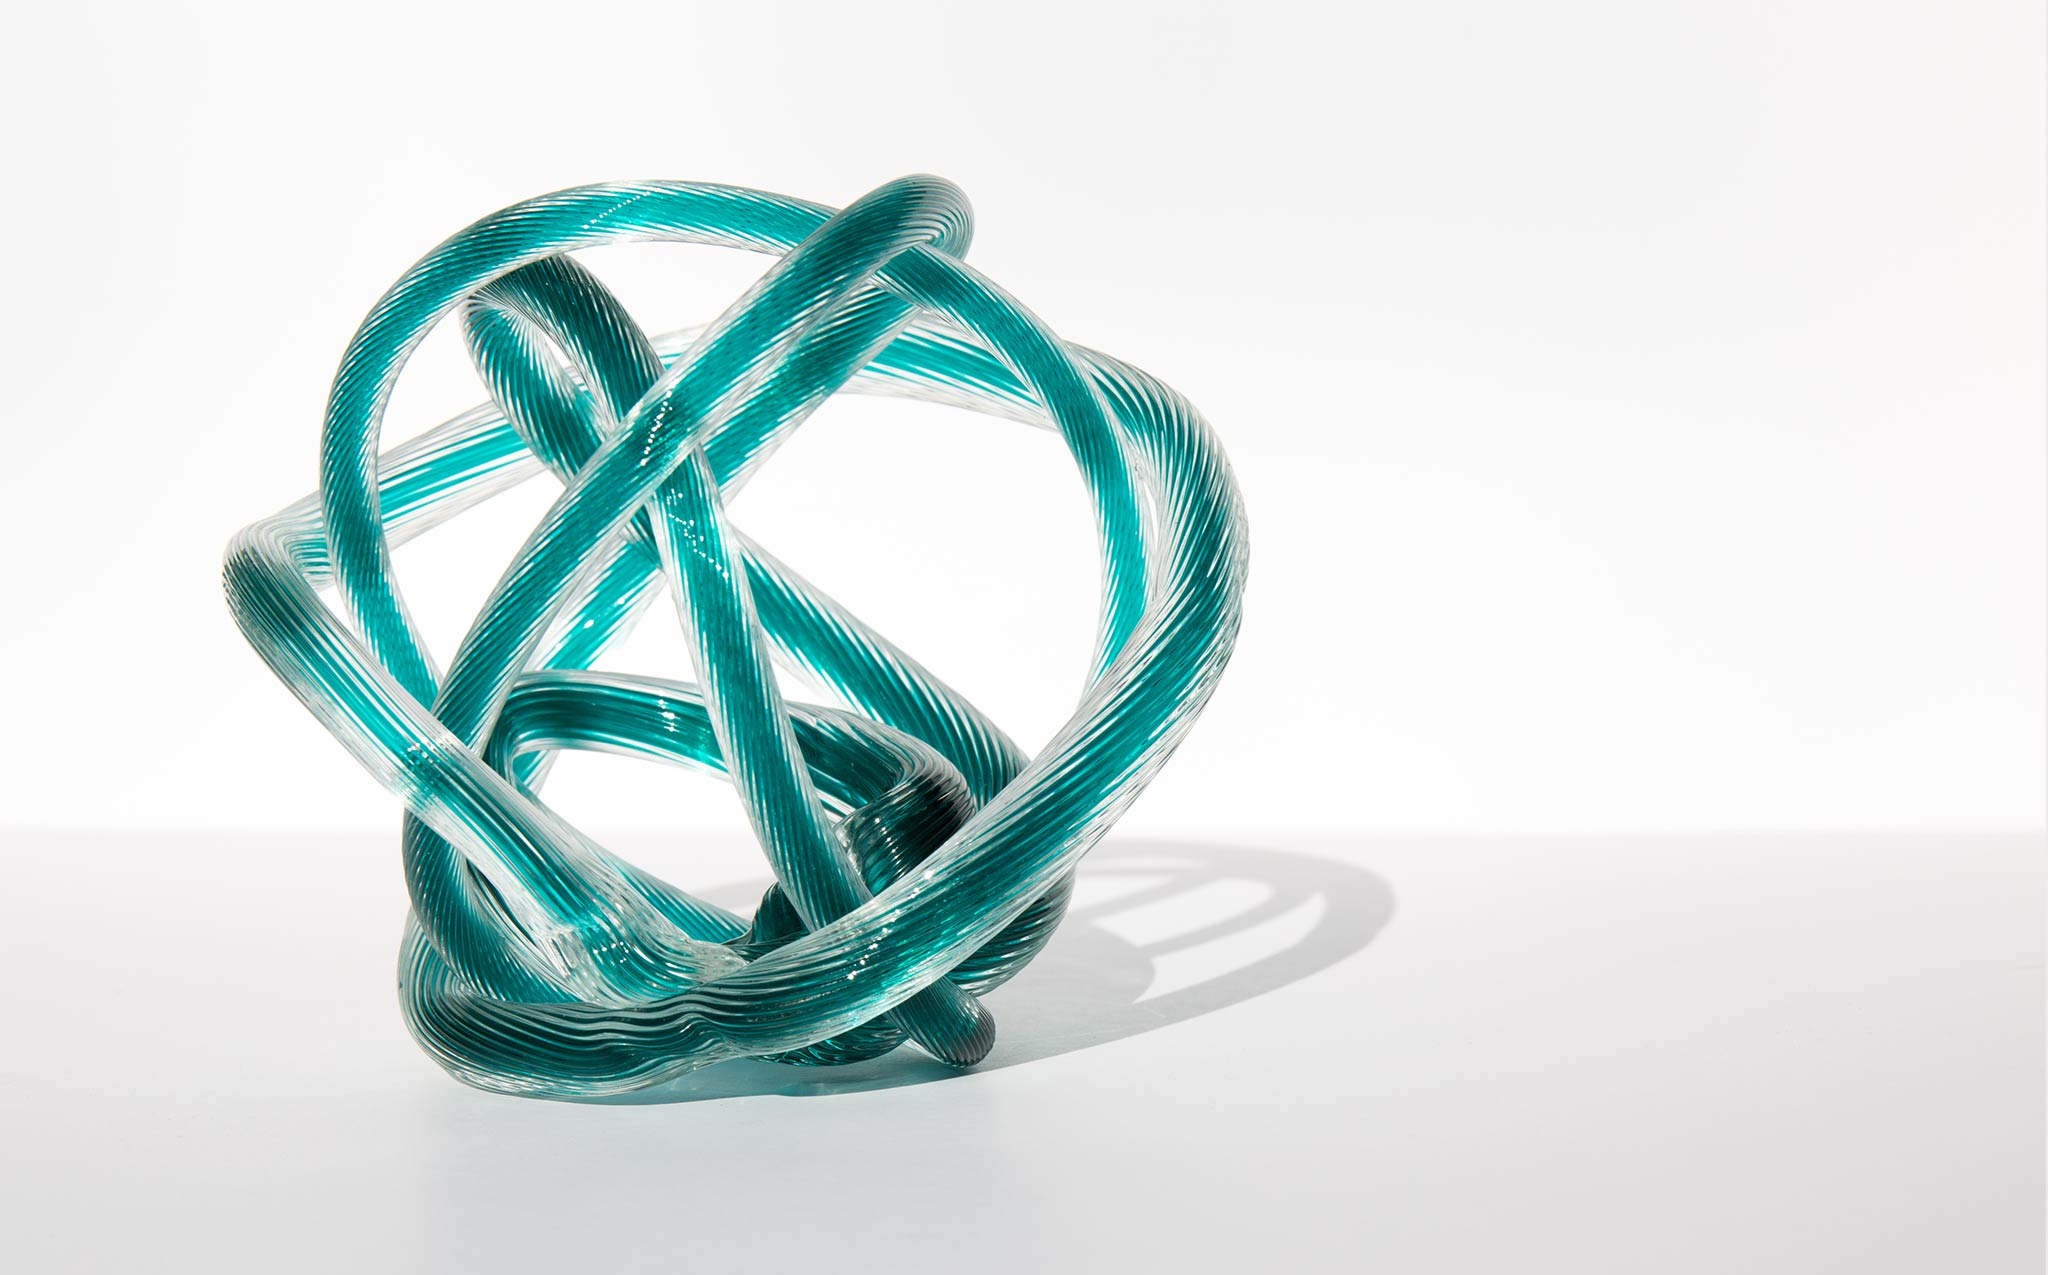 Mid Century Glass Knot Sculpture